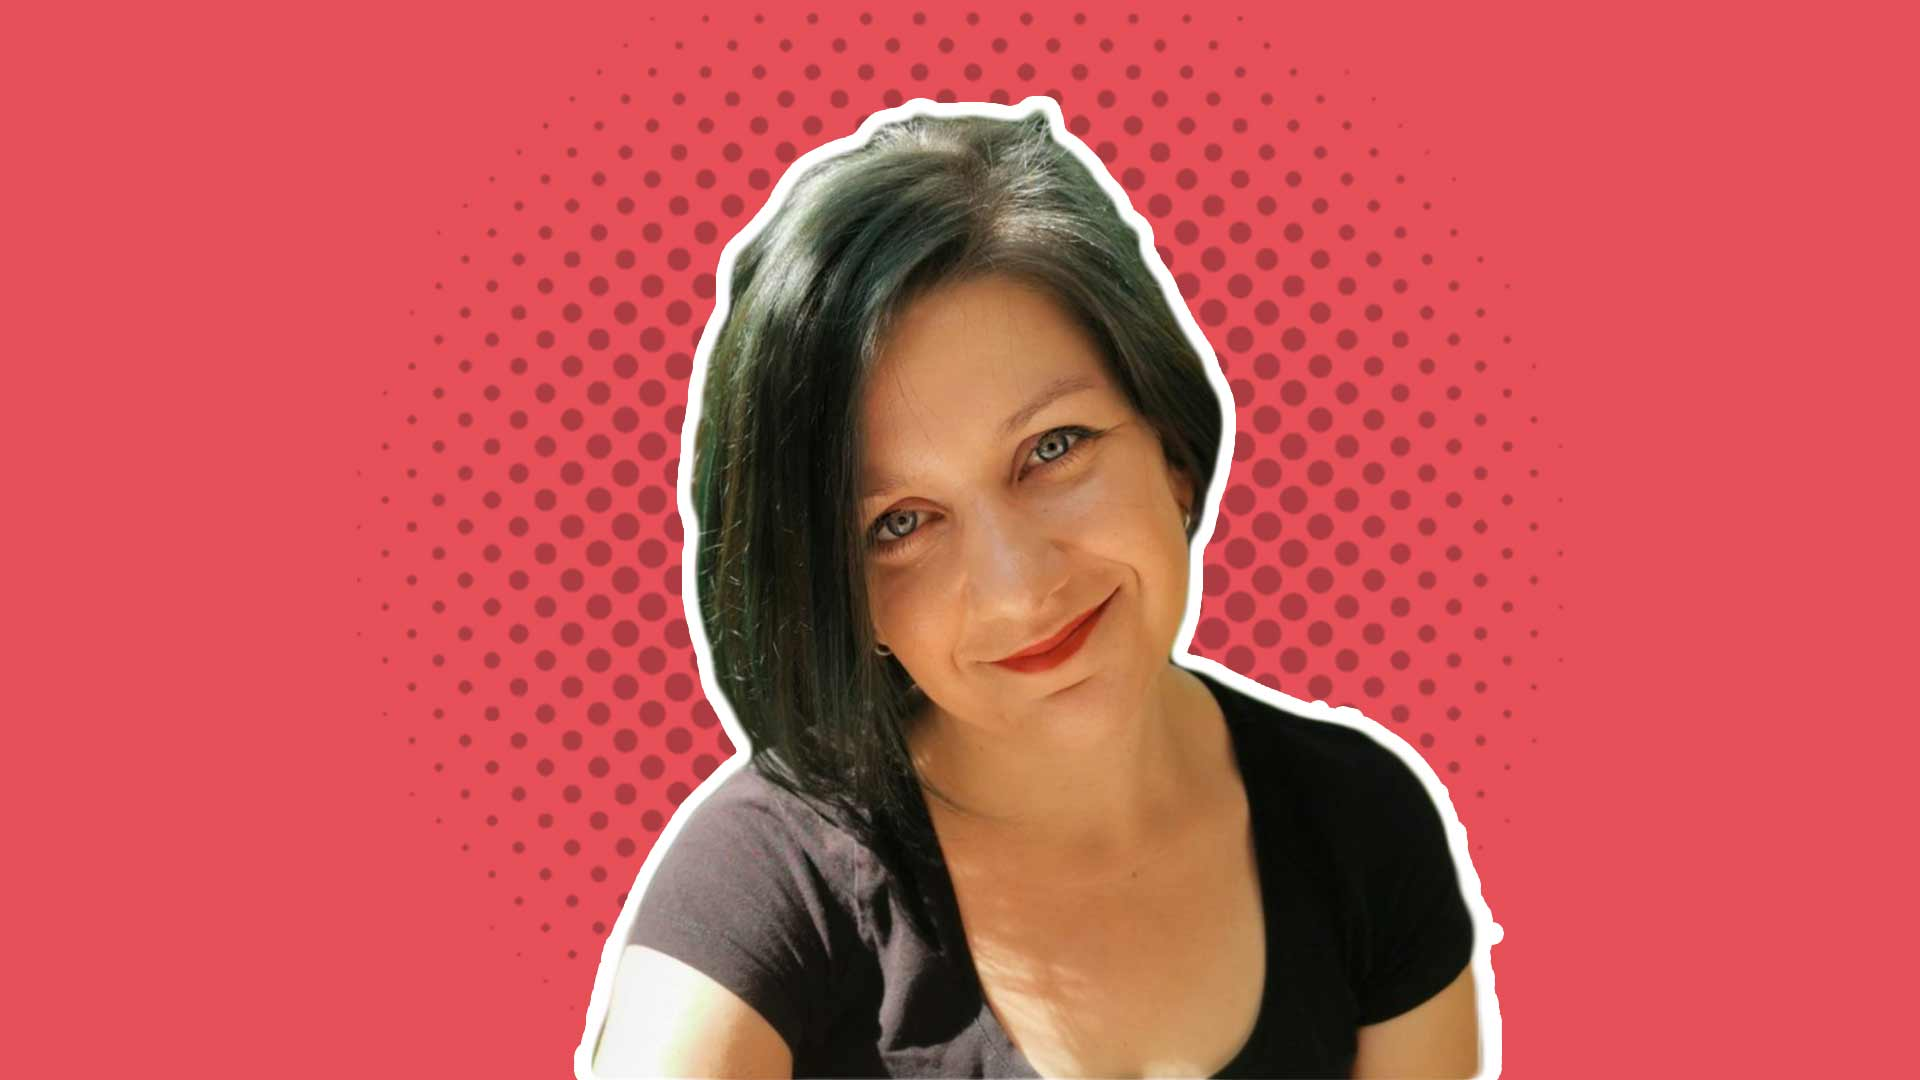 How COVID-19 lockdown's led to Eszter starting a career in digital marketing